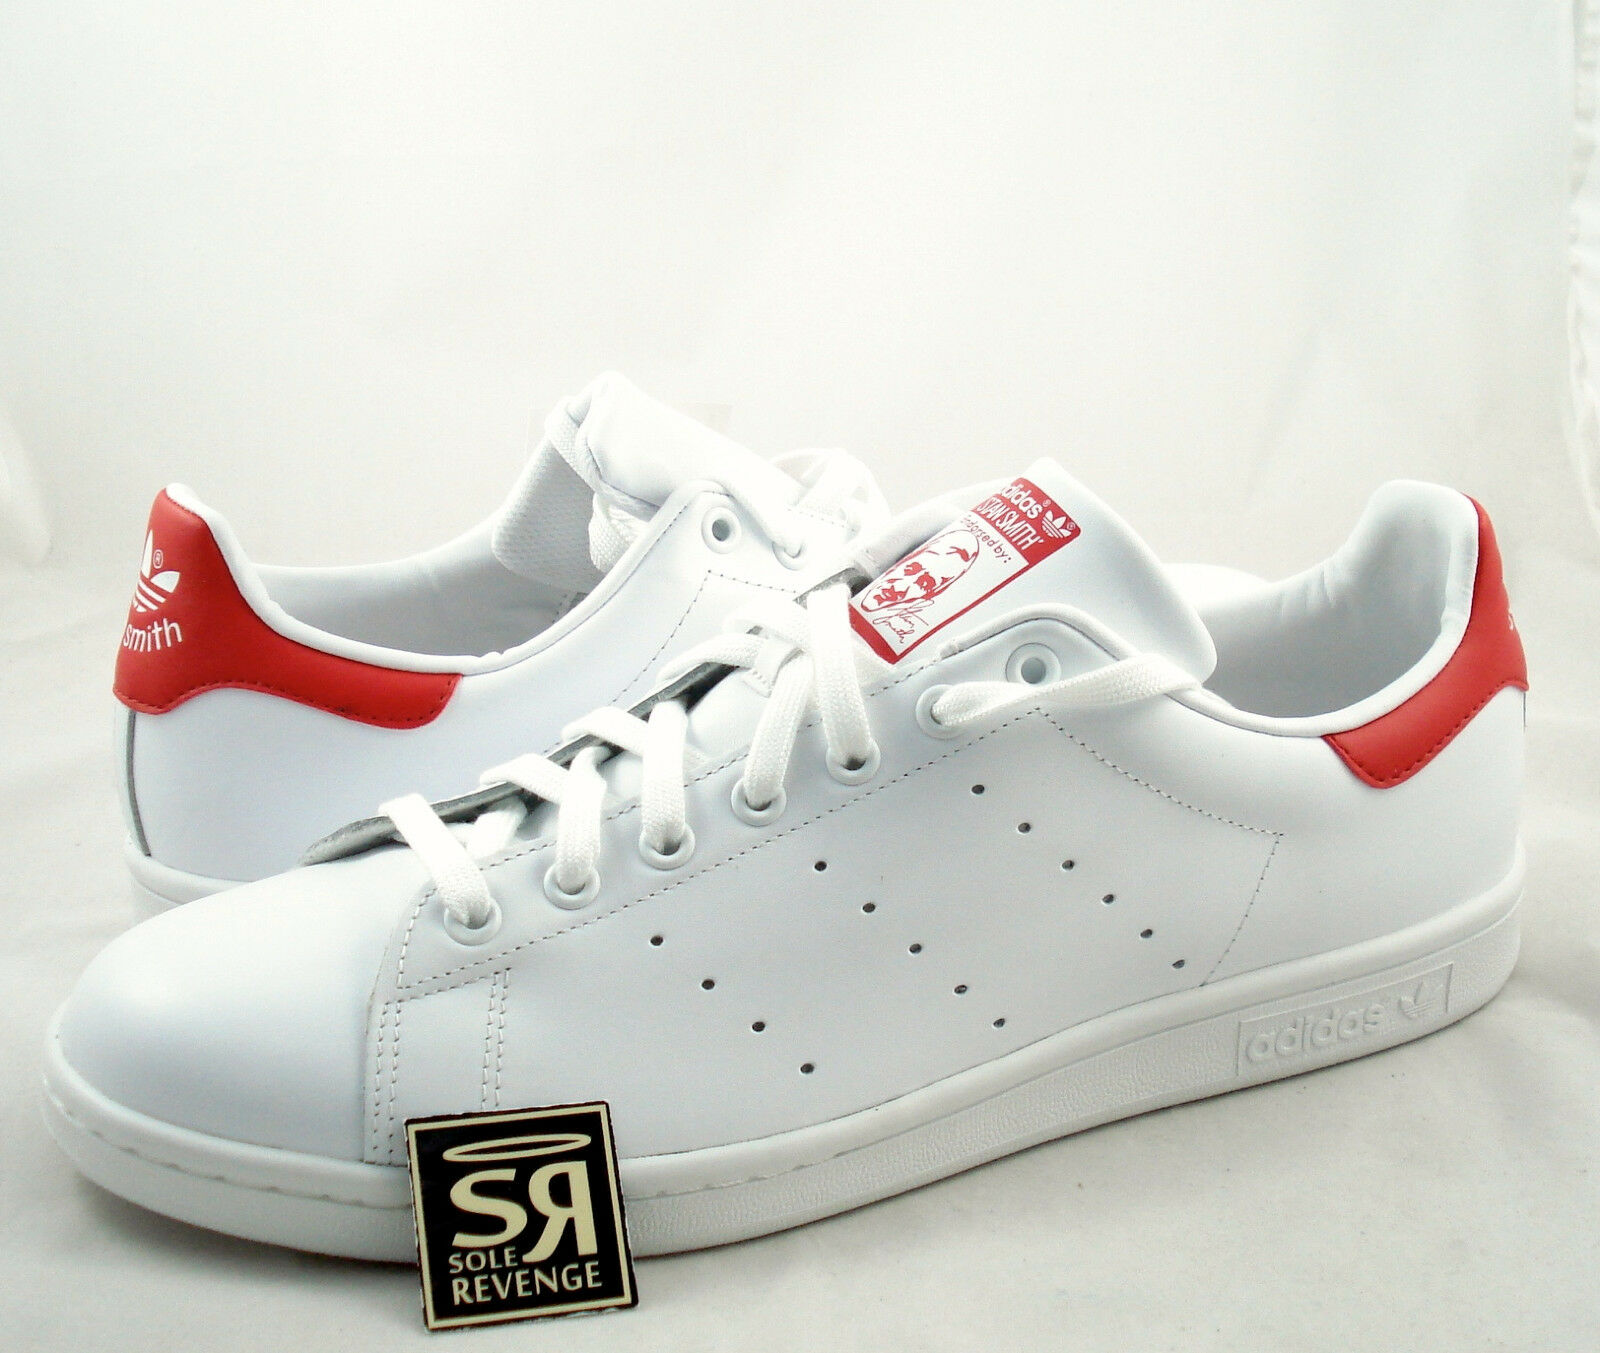 New adidas Originals Uomo Stan Smith Shoes Running White/Red M20326 Tennis